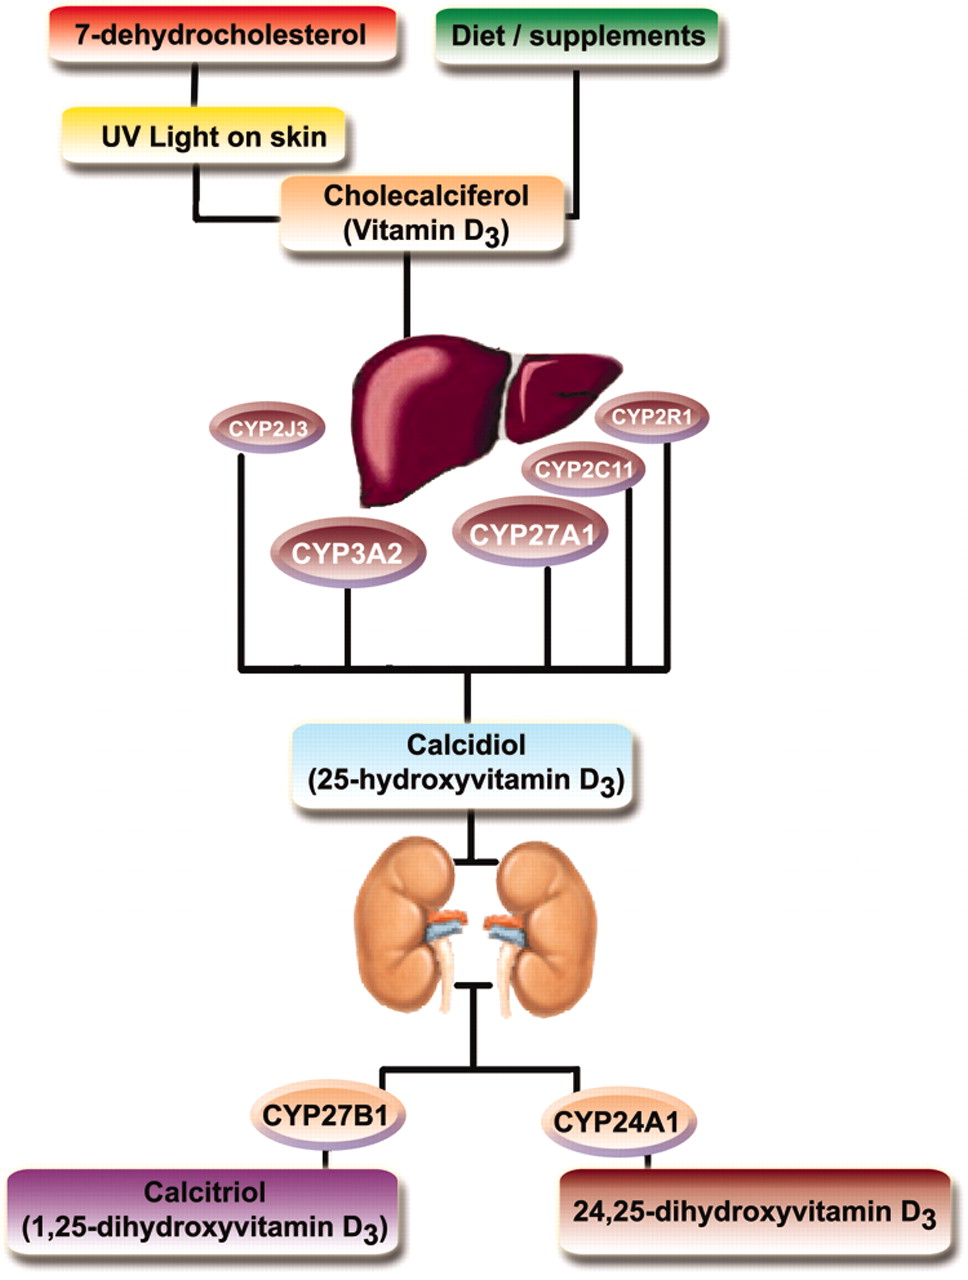 Reduced Hepatic Synthesis of Calcidiol in Uremia   American